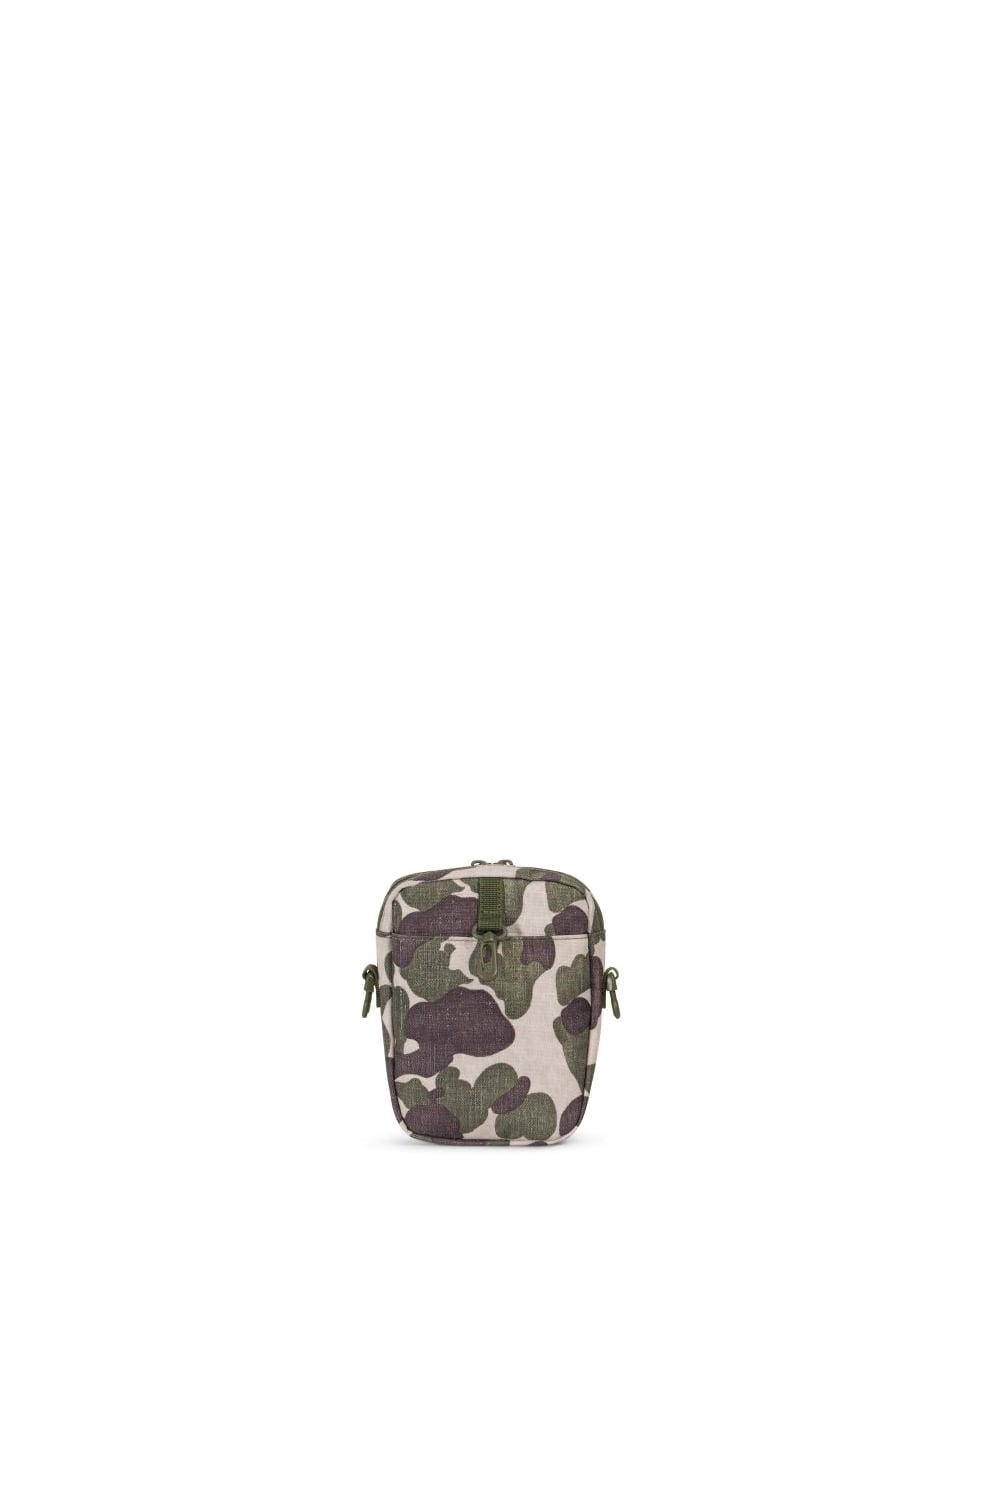 e18d16aa7cd5 Herschel Supply Co Cruz Crossbody Bag (Frog Camo)